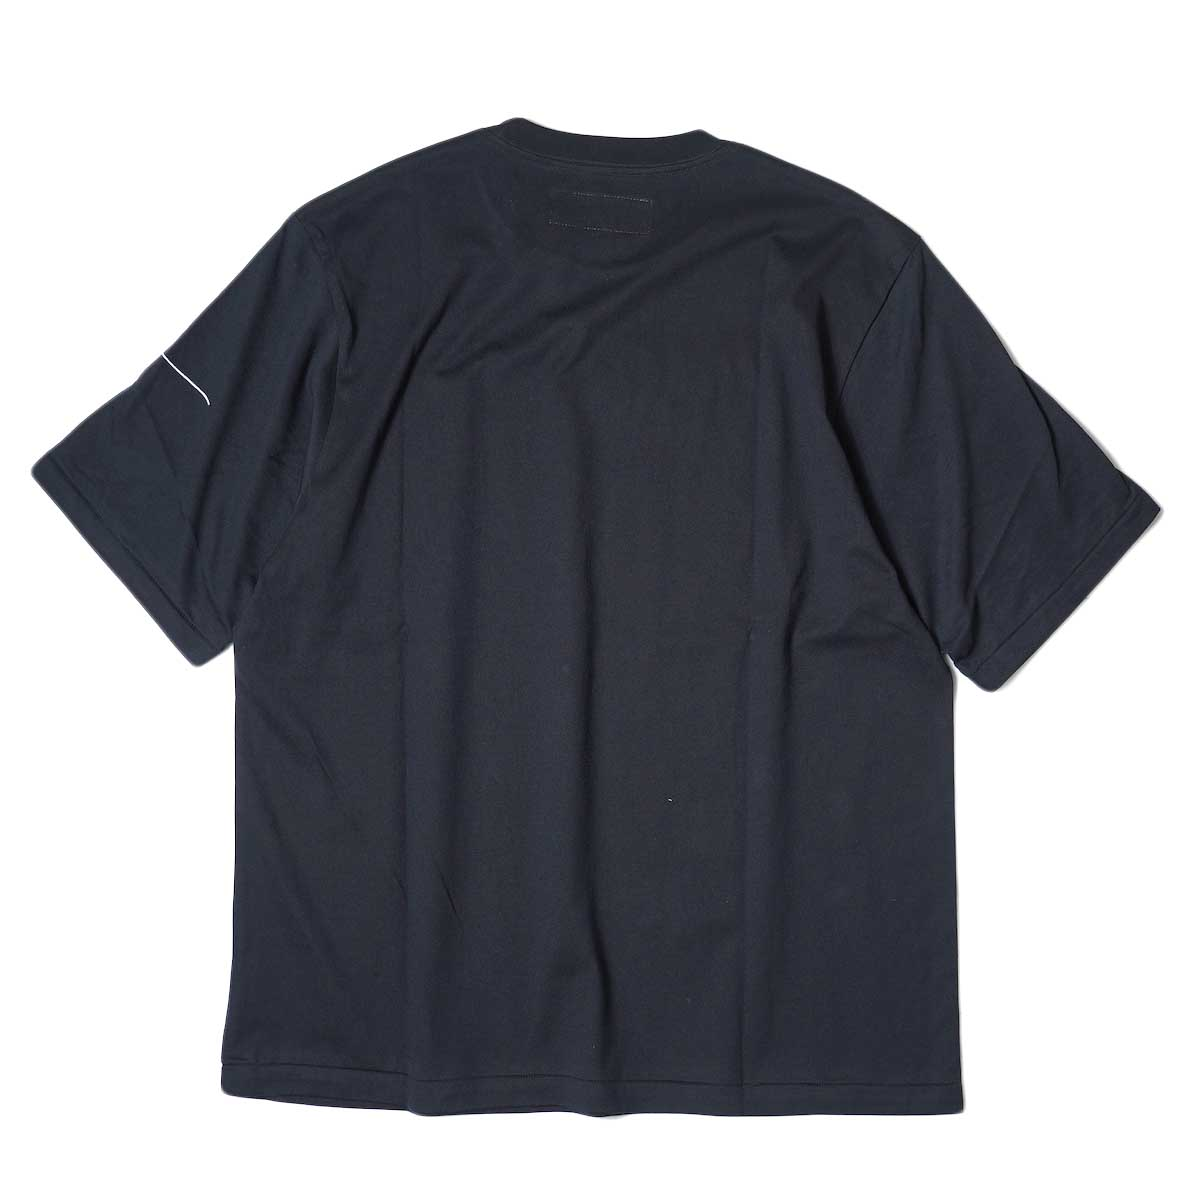 JANE SMITH / CADILLAC PLYMOUTH S/S T-Shirt (Black) 背面